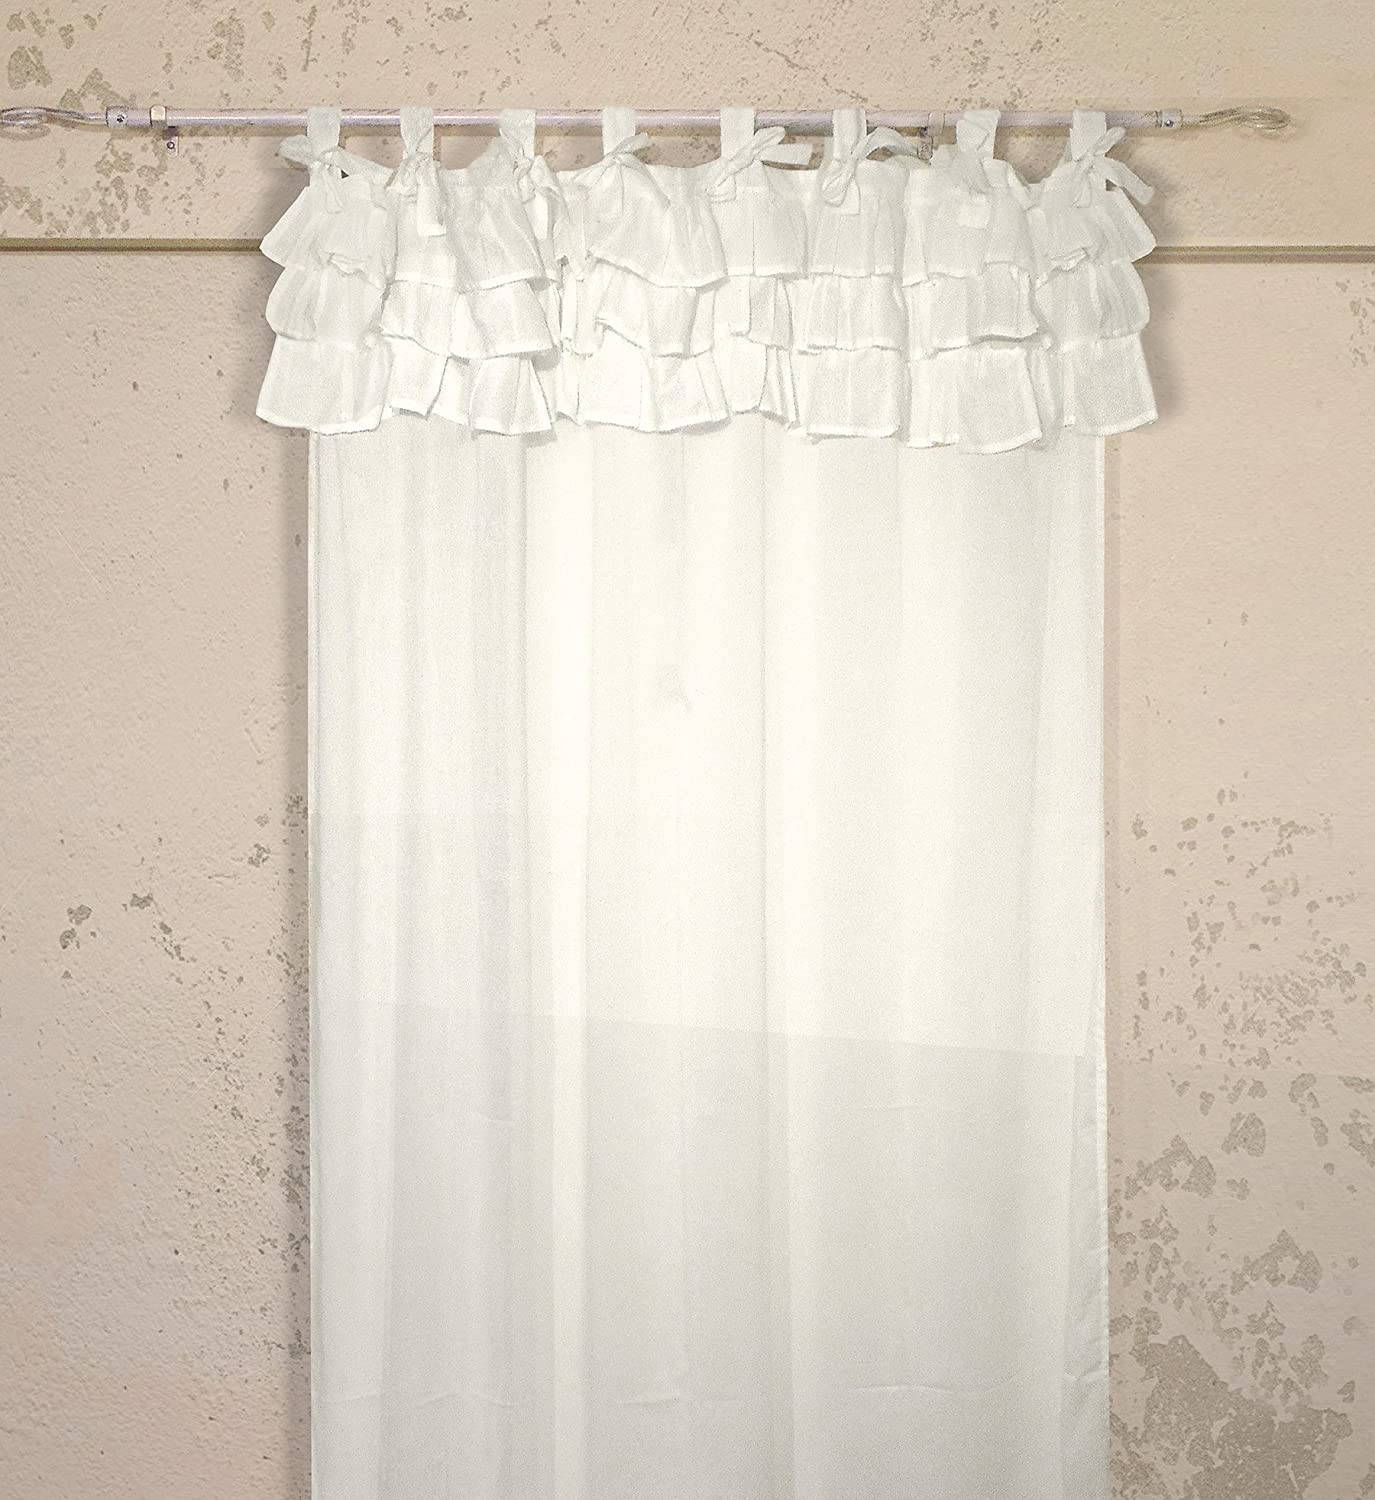 Tenda con balze Shabby Chic Etoile Collection 130 x 290 cm Colore ...